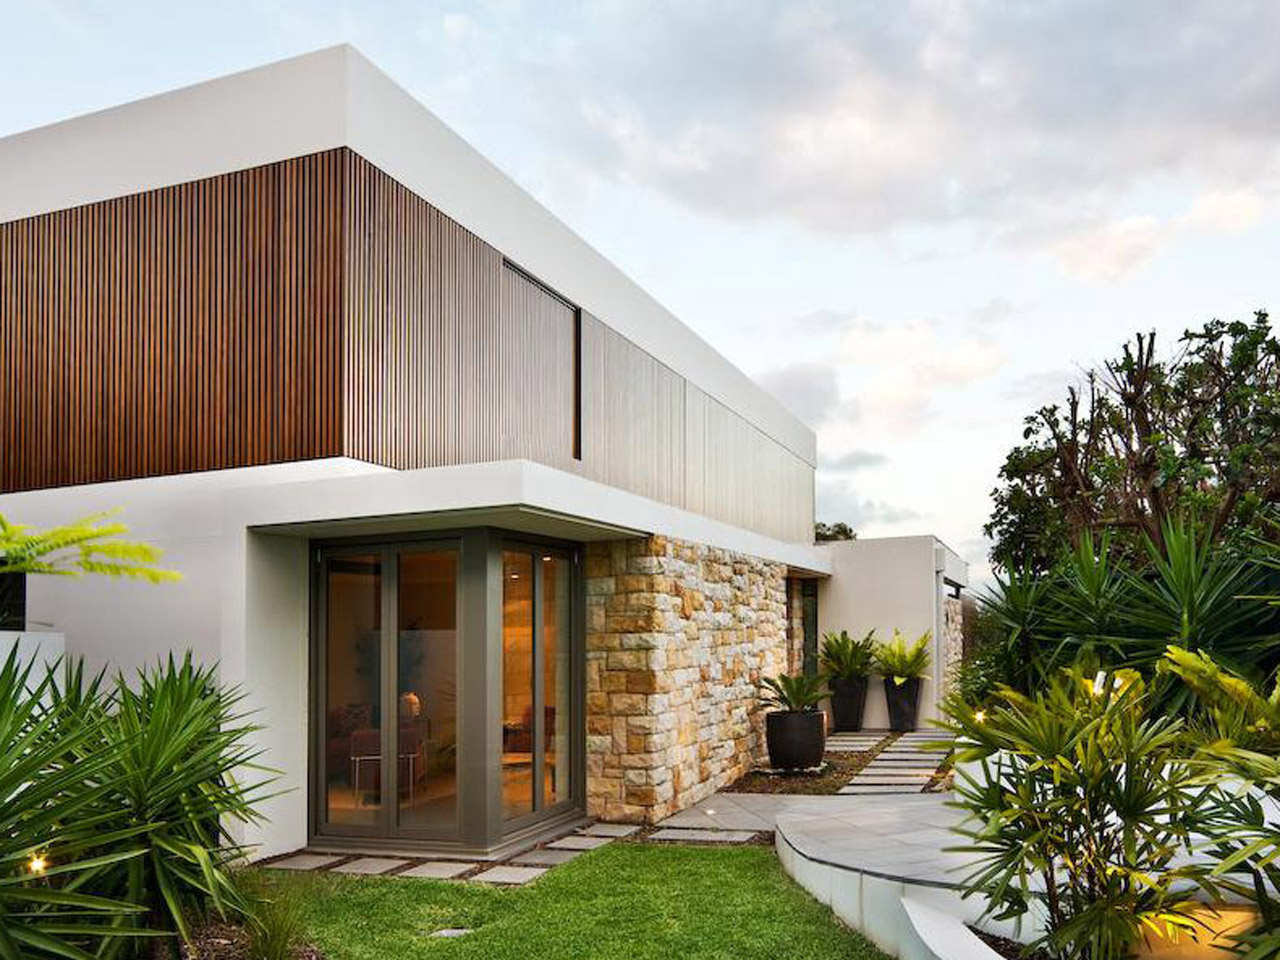 minimalist style home with wood glass stone exterior design